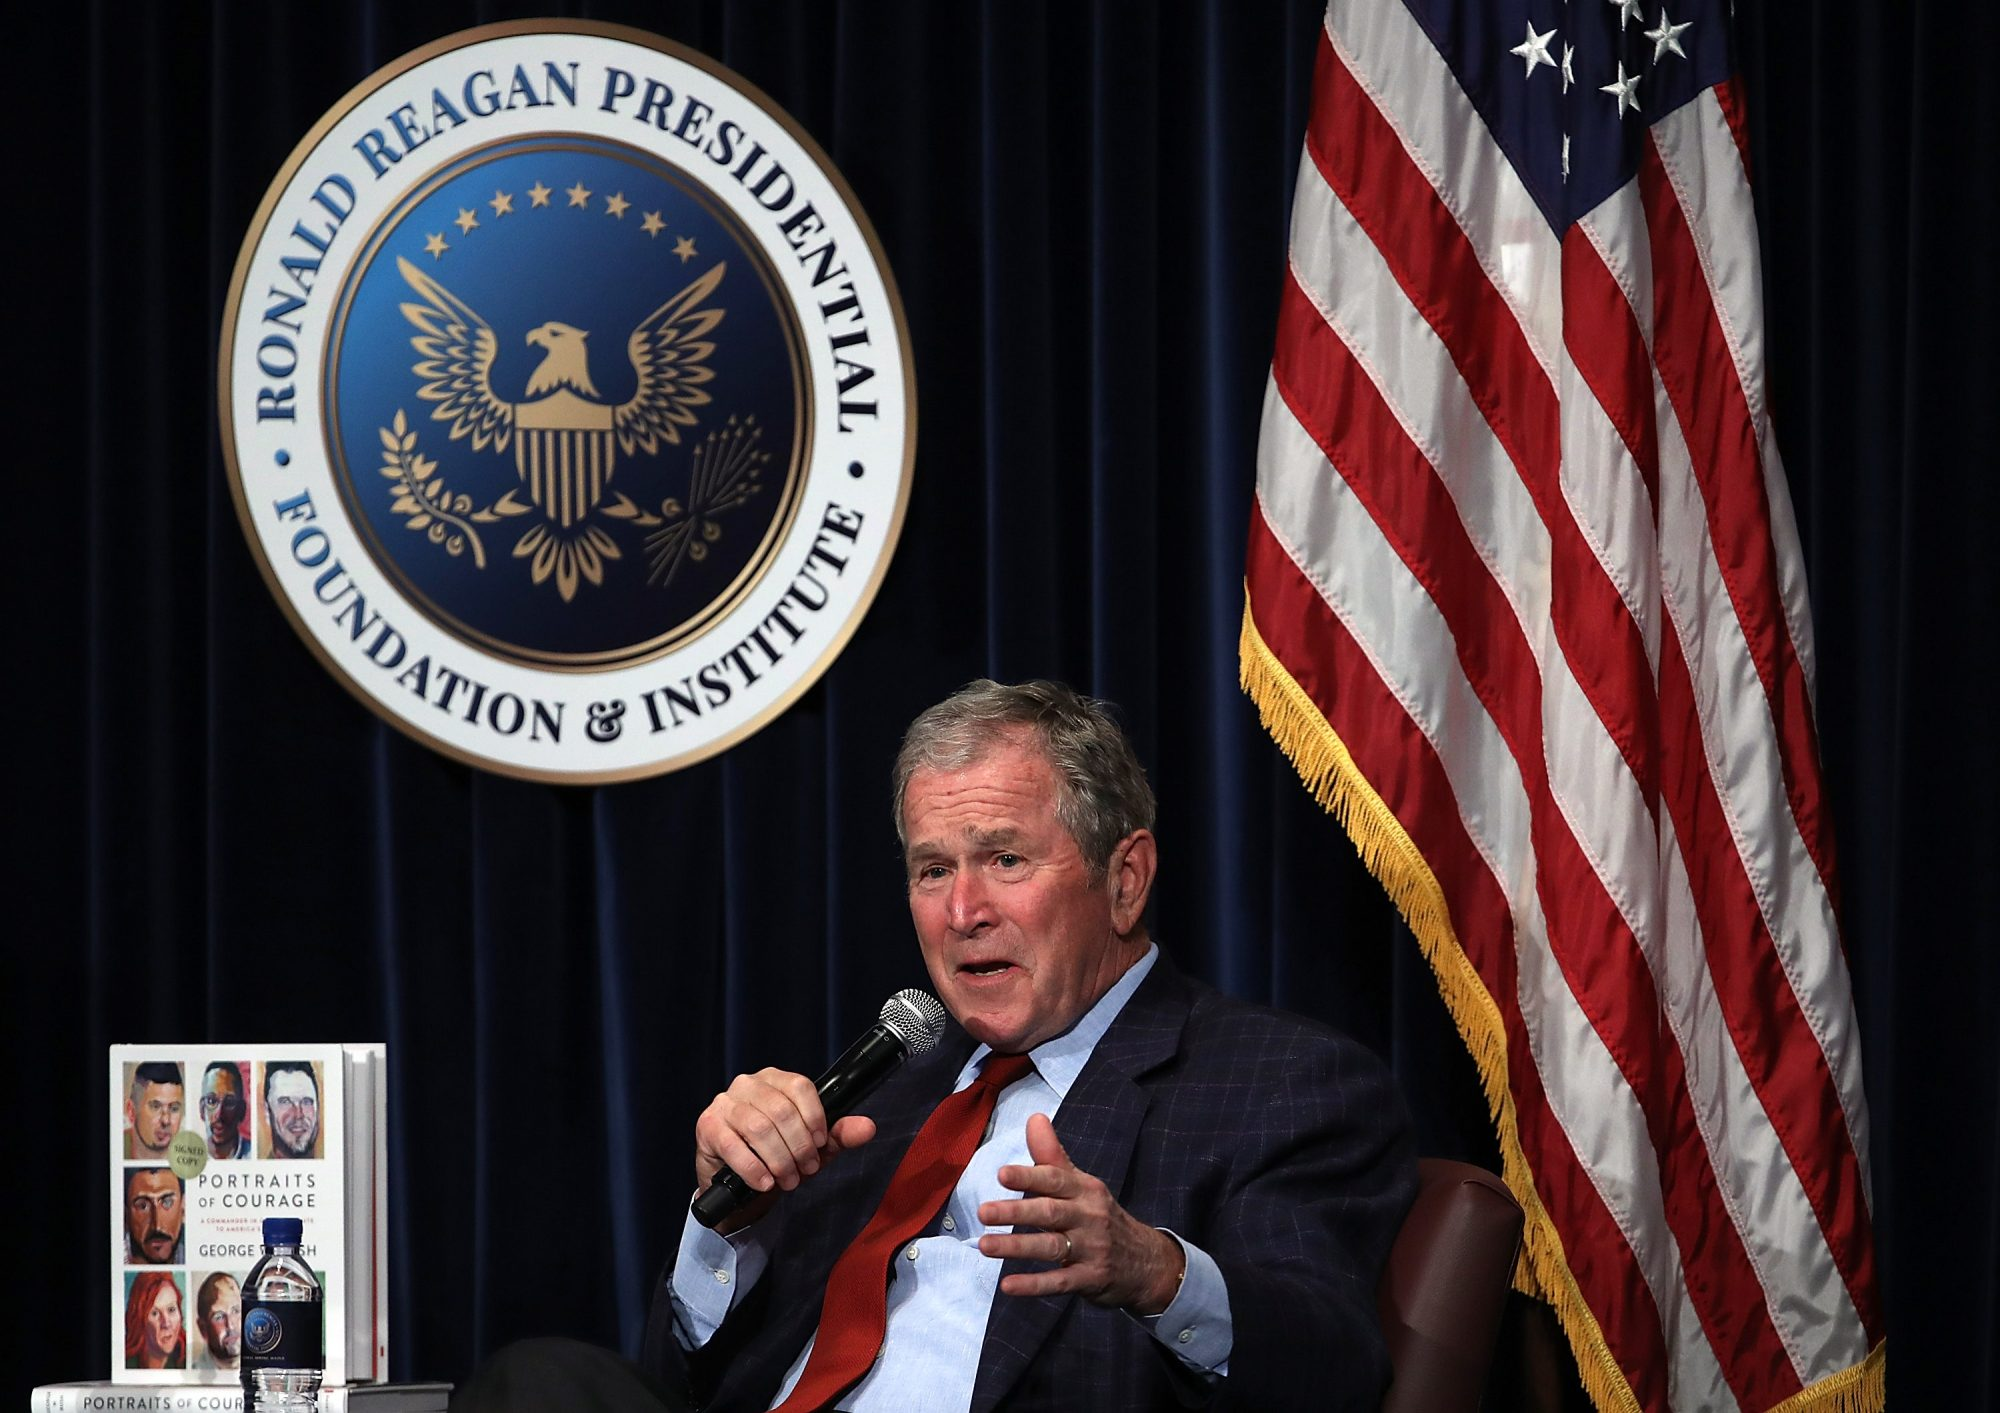 George W. Bush Discussing Portraits of Courage Book